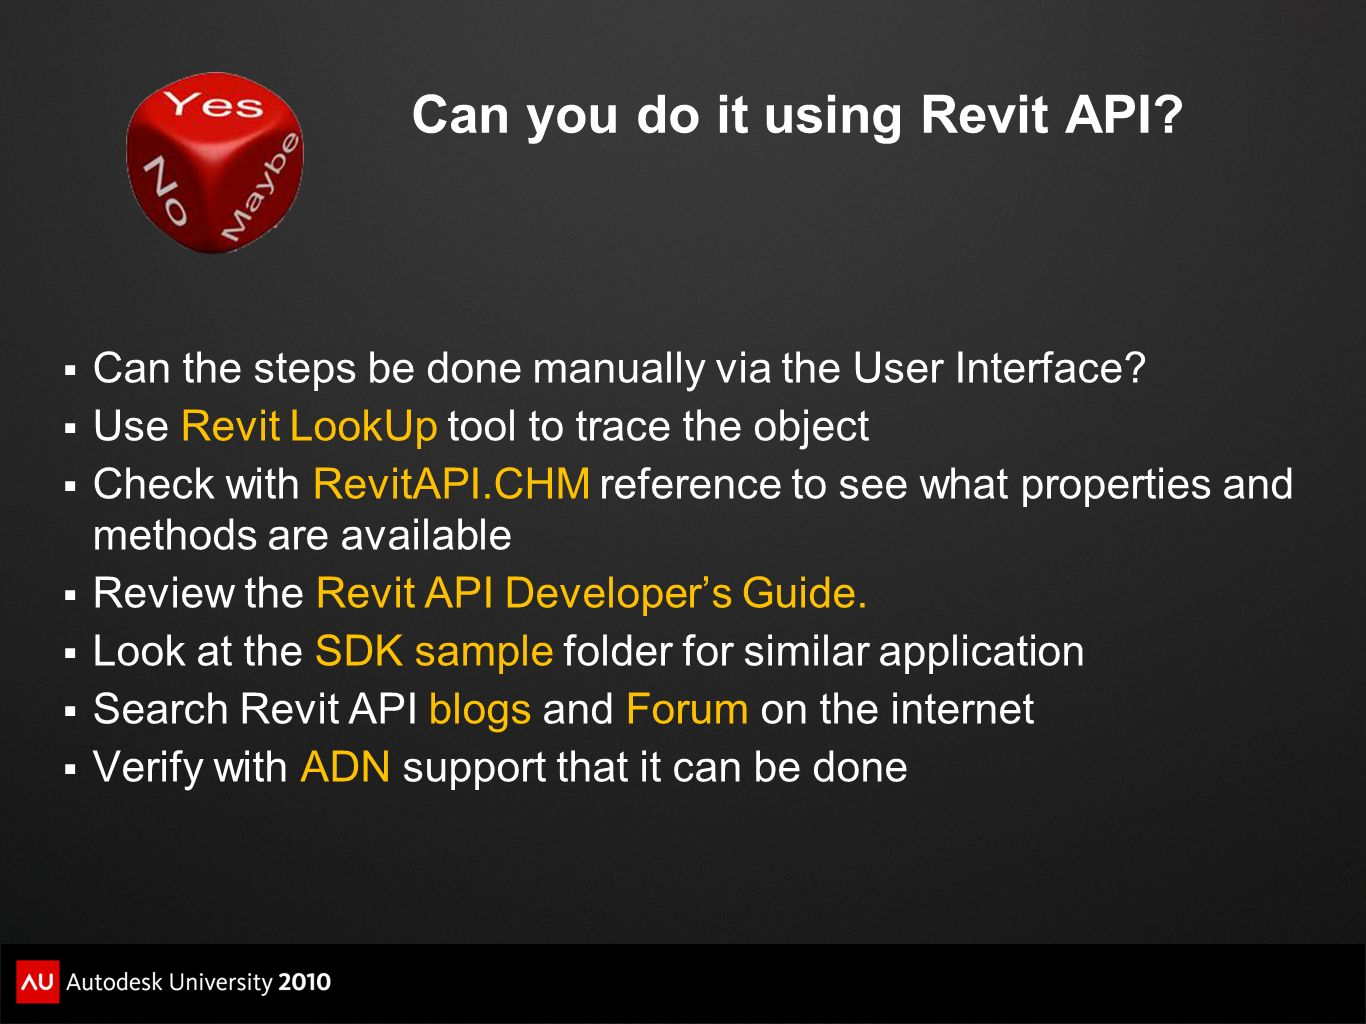 Can you do it using Revit API